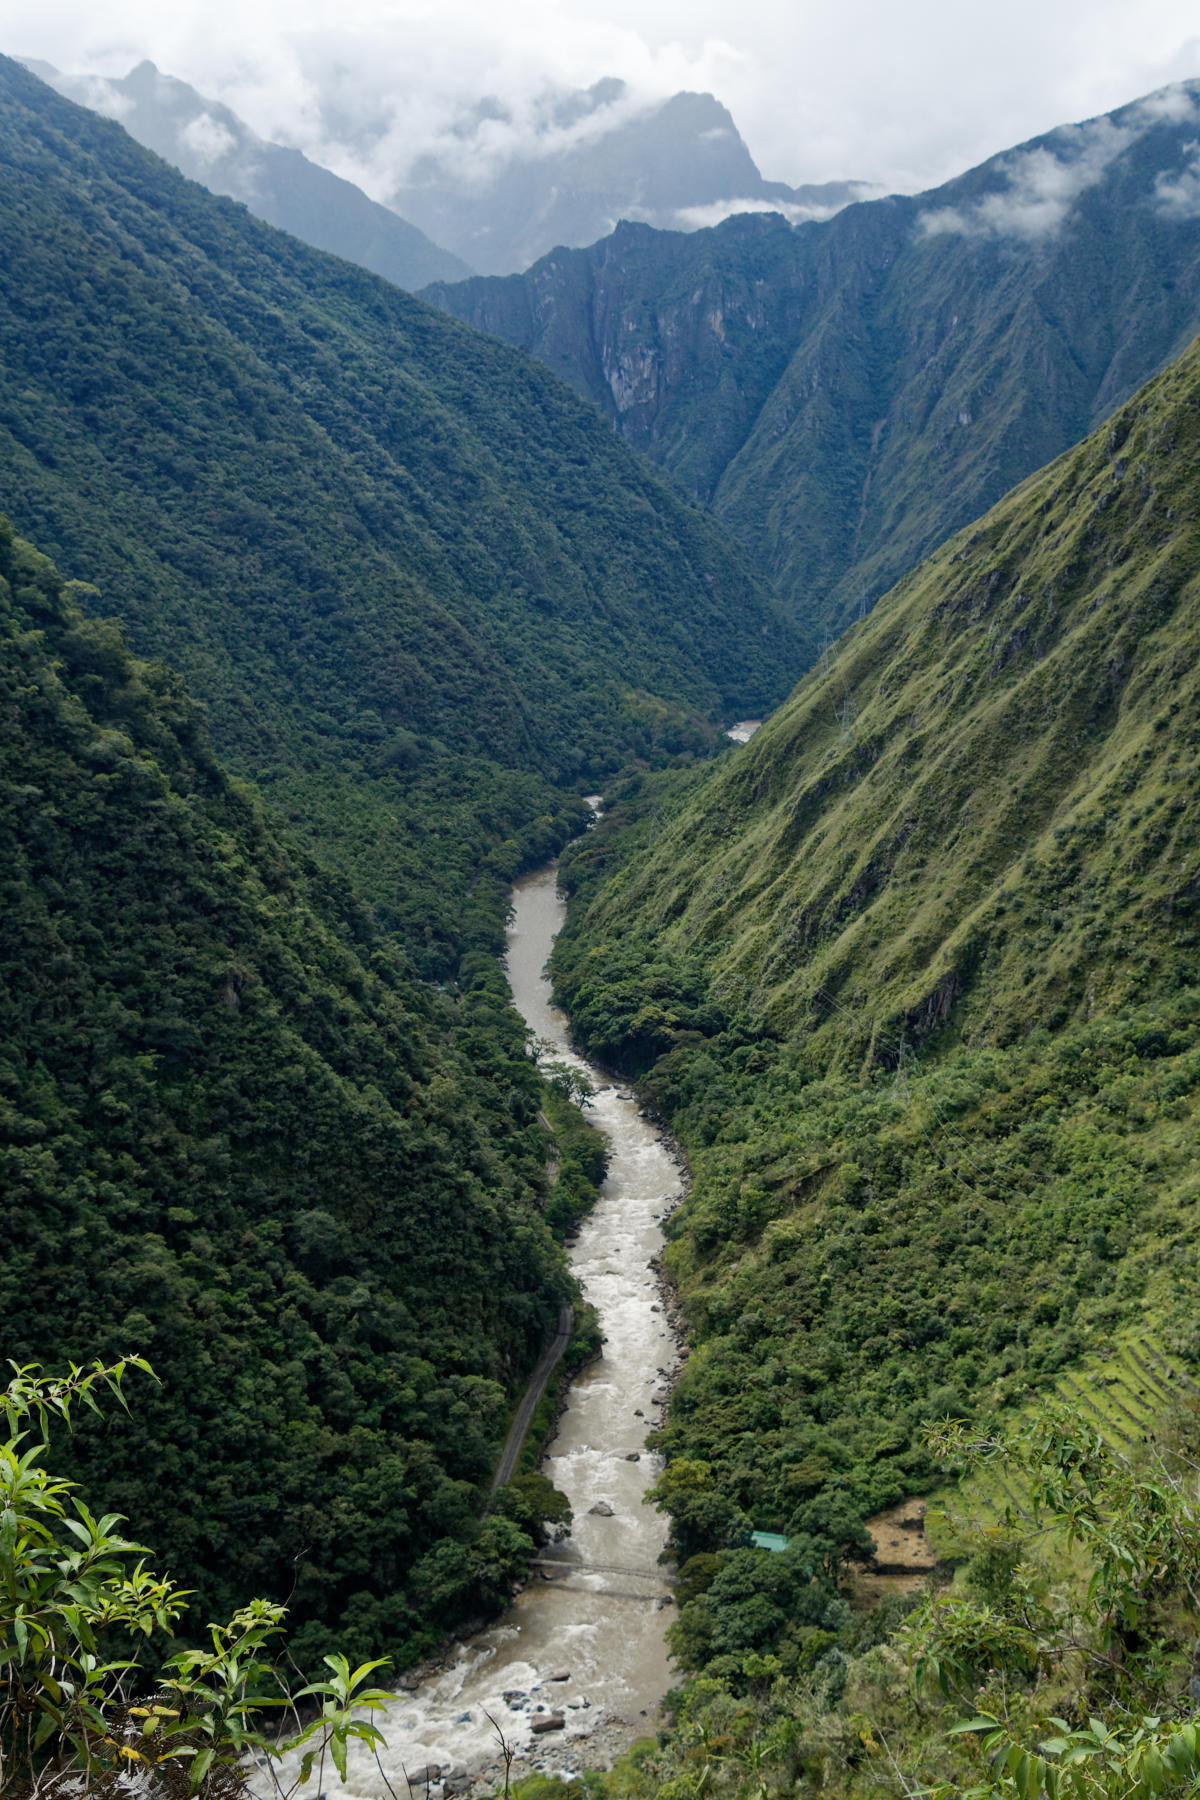 View along the Urubamba River